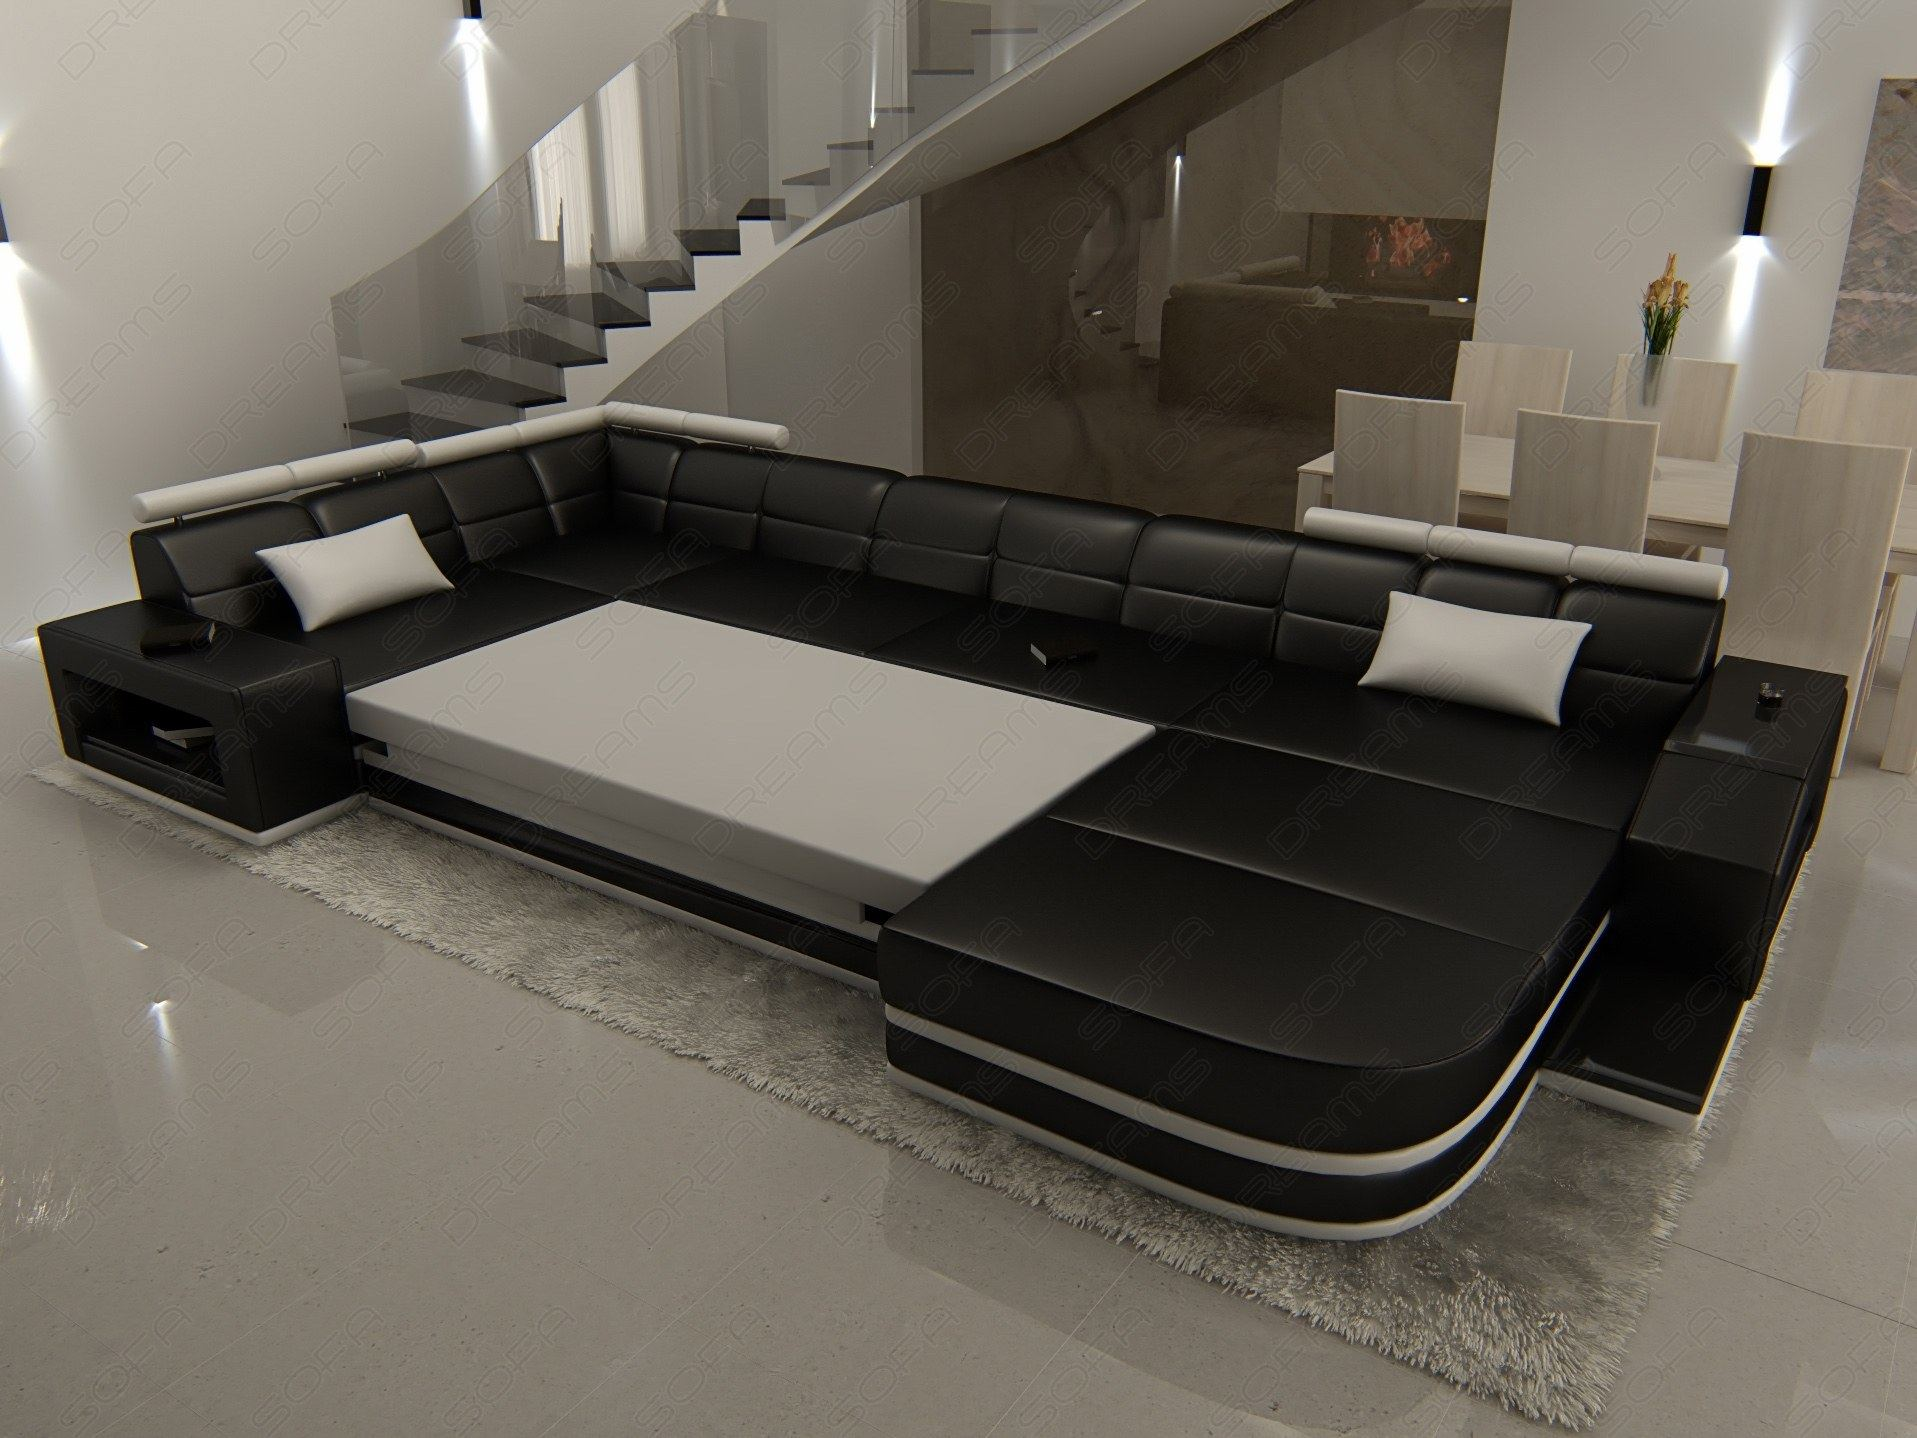 sofa de cuero venezia sofa de diseno luz sofa de cuero alcolchado sofa. Black Bedroom Furniture Sets. Home Design Ideas